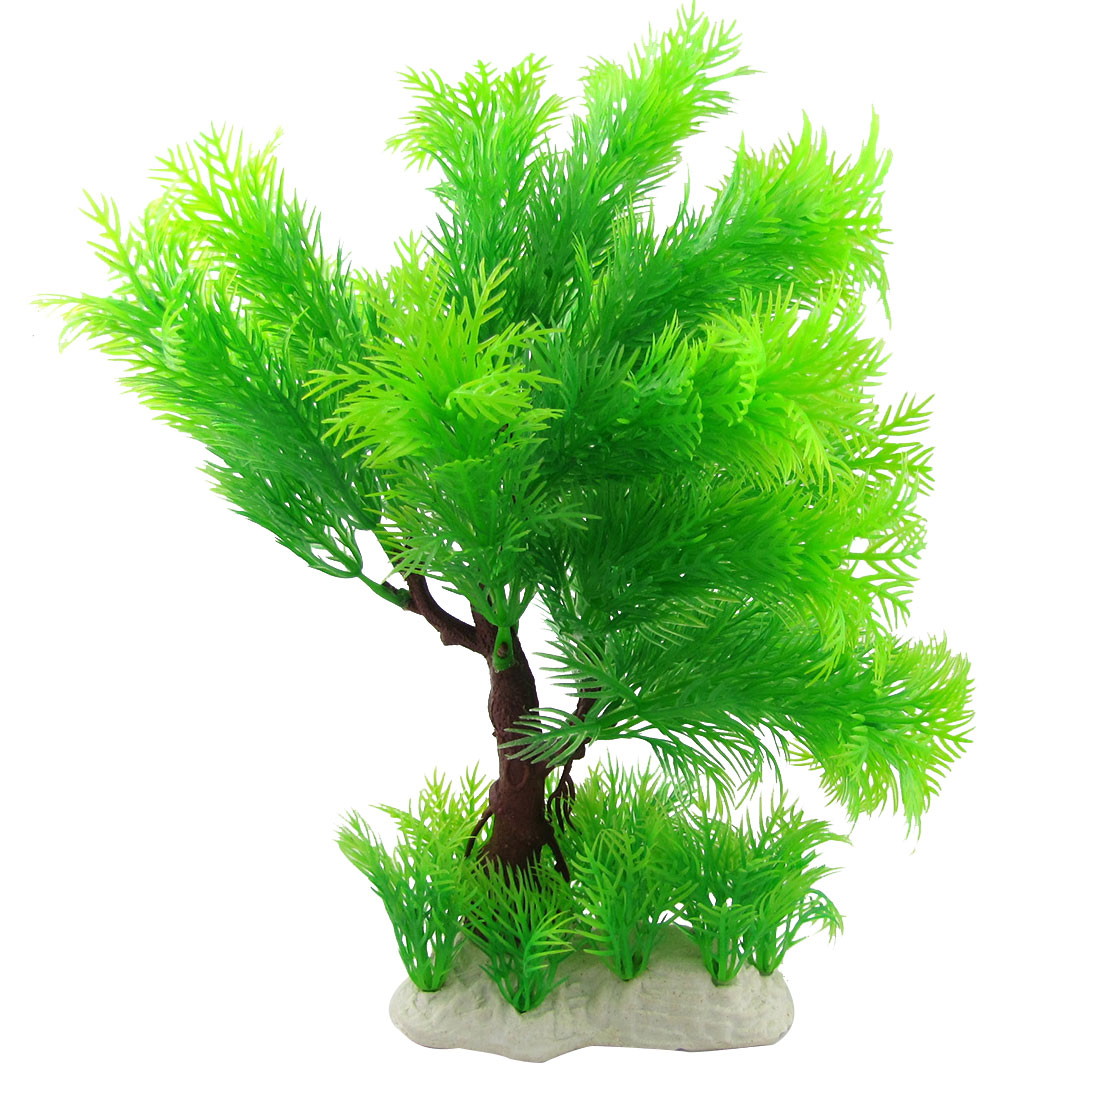 Aquarium Aquascaping Evergreen Coniferous Pine Tree Plastic Decorative Plant